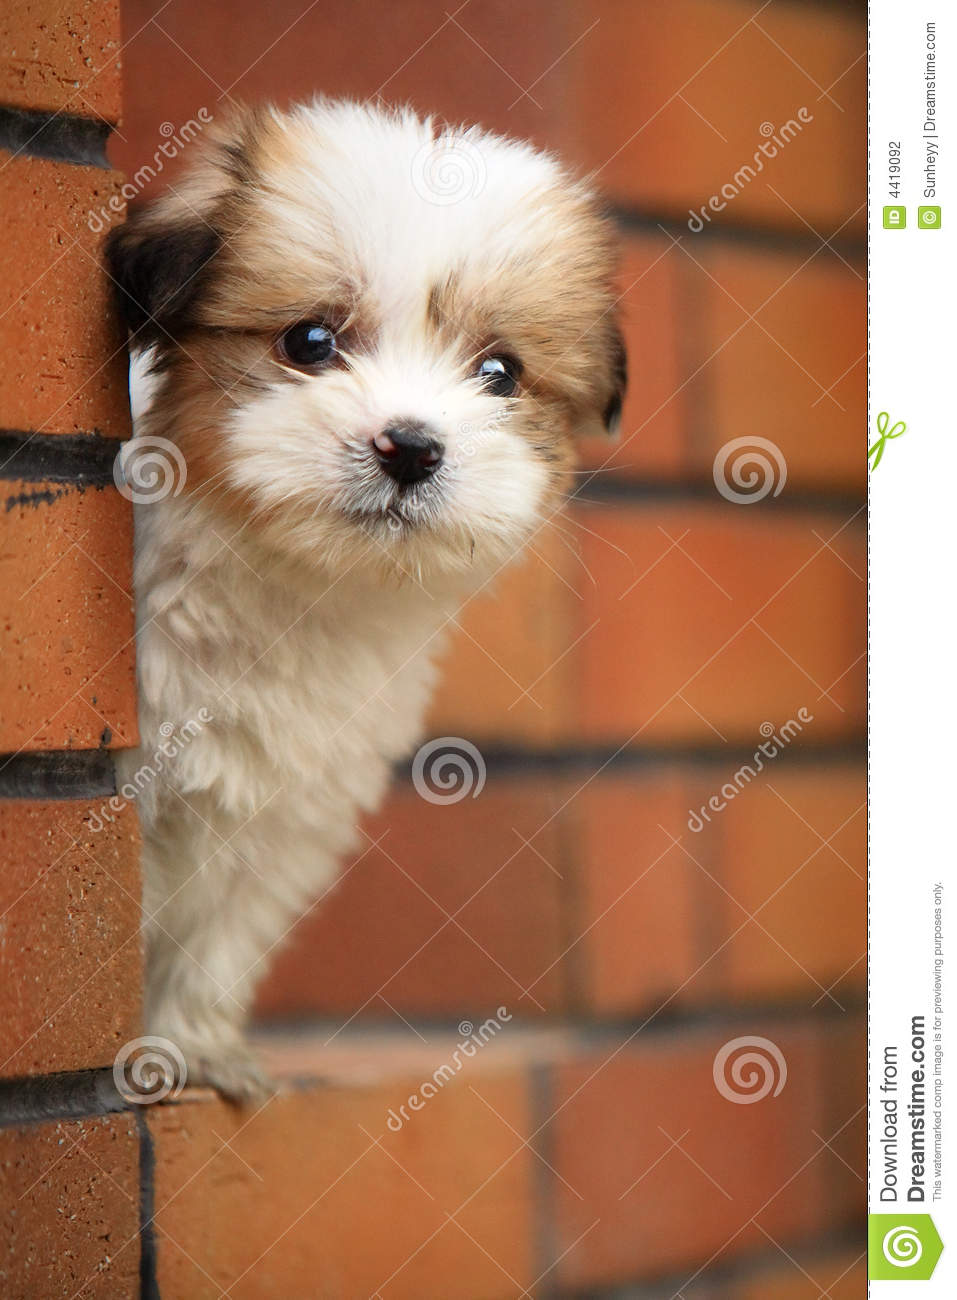 Baby Dog Stock Photography Image 4419092